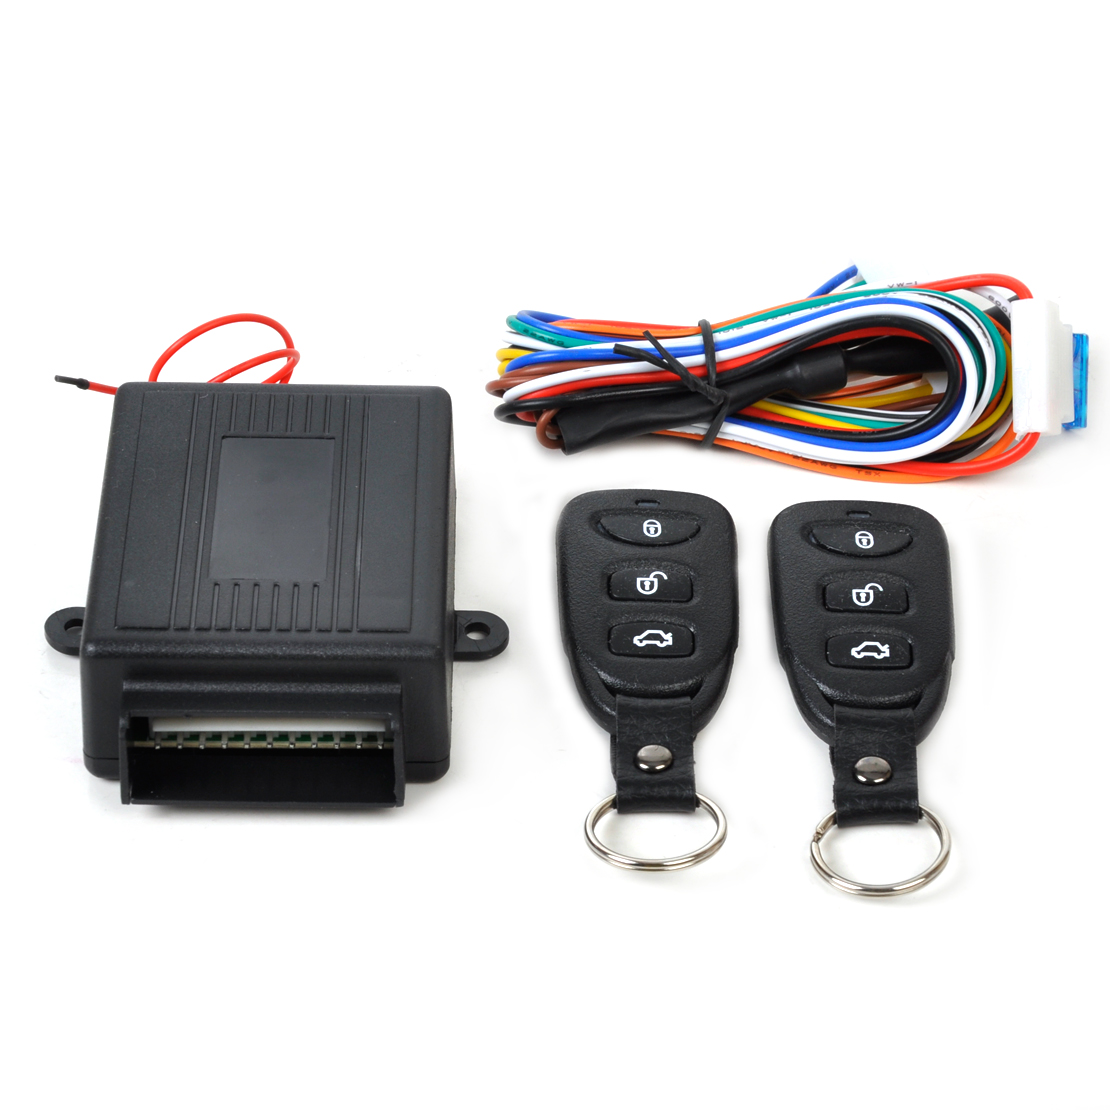 Universal Car Keyless Entry System Kit Remote Control